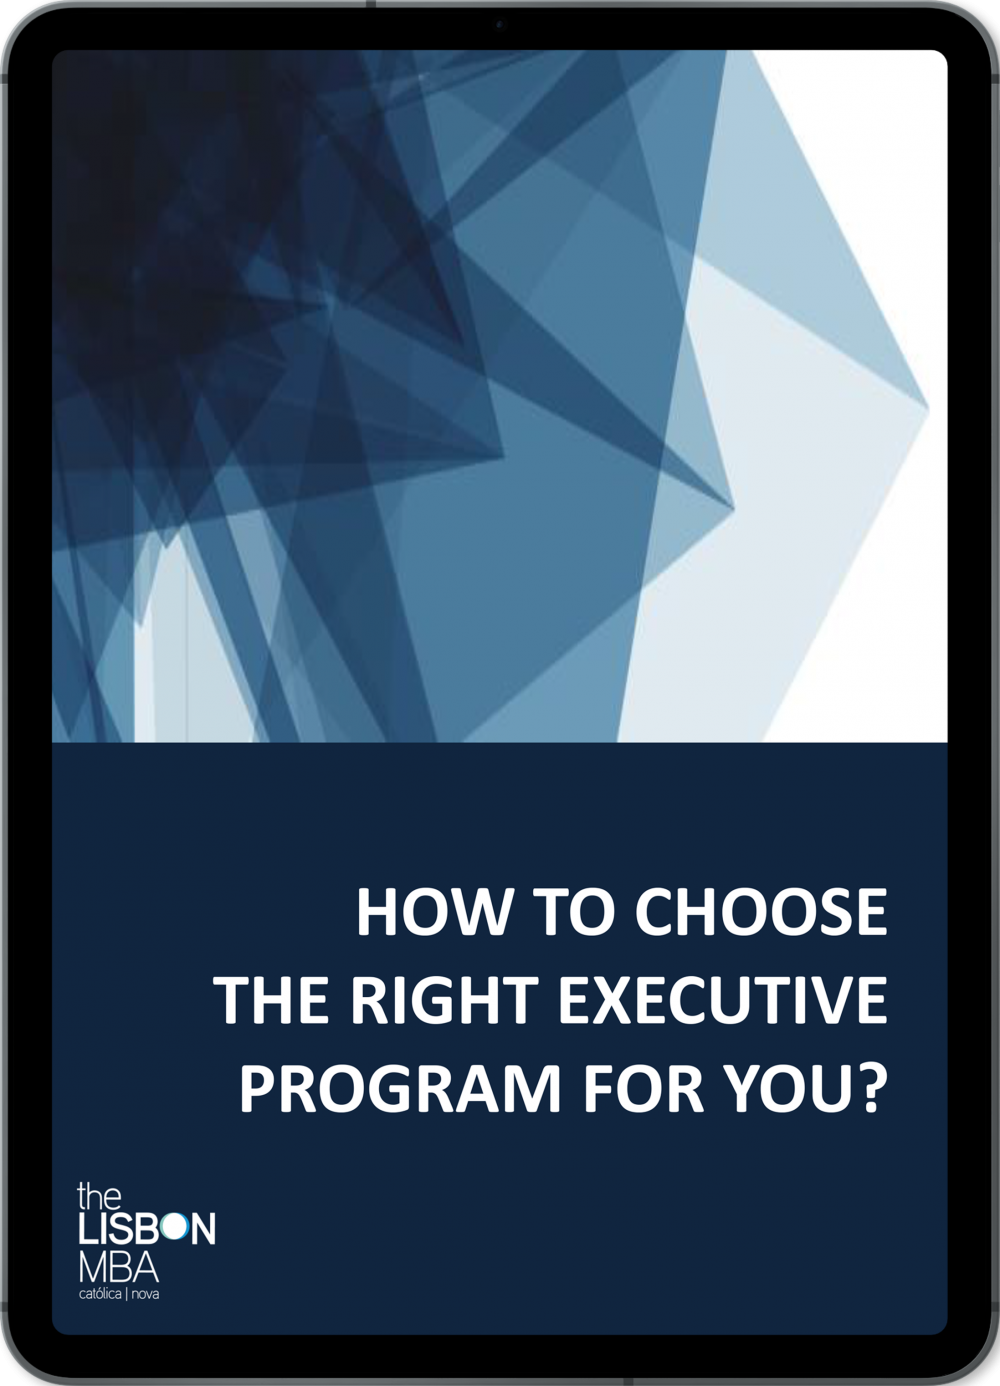 How to choose the right program for You